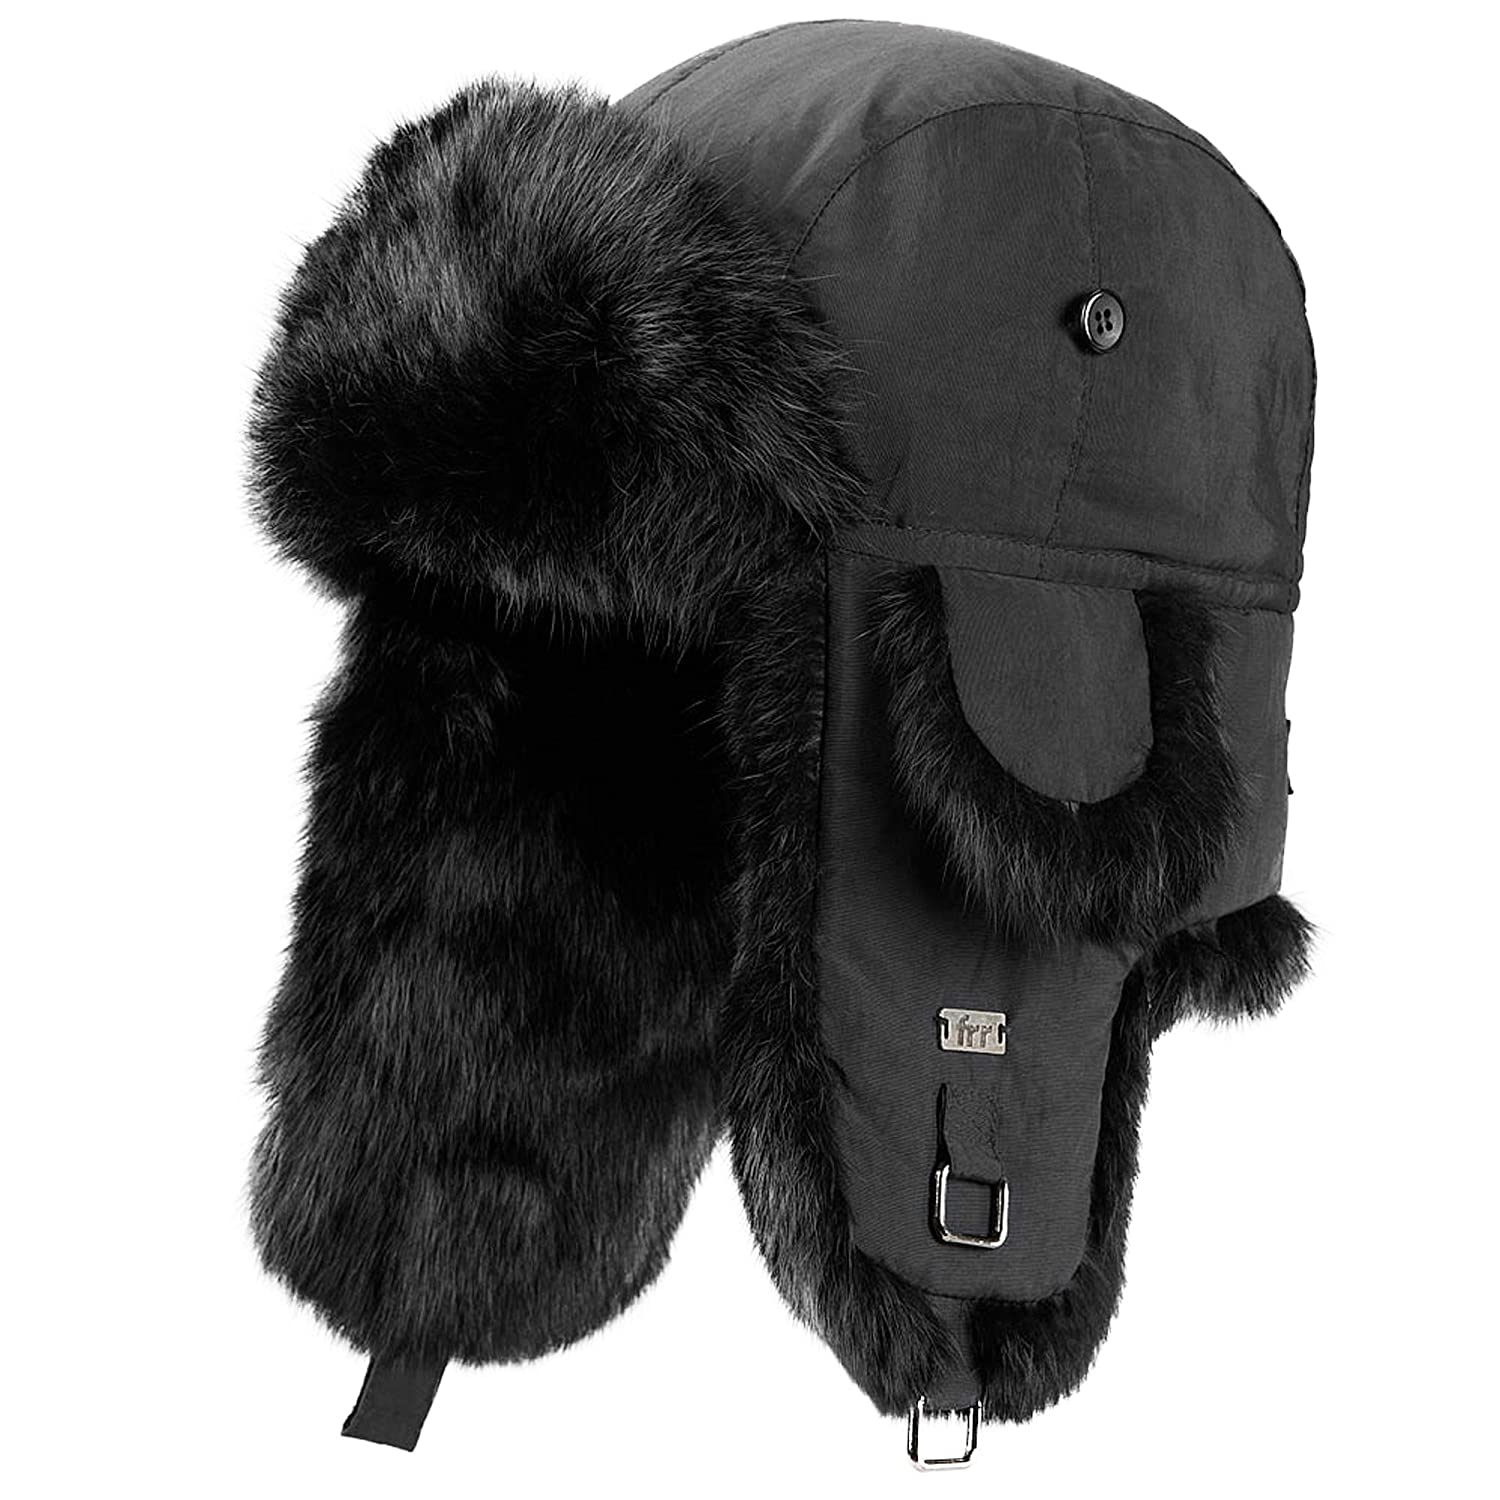 0b596e05fddf48 frr B-52 Aviator Hat with Rabbit Fur at Amazon Men's Clothing store: